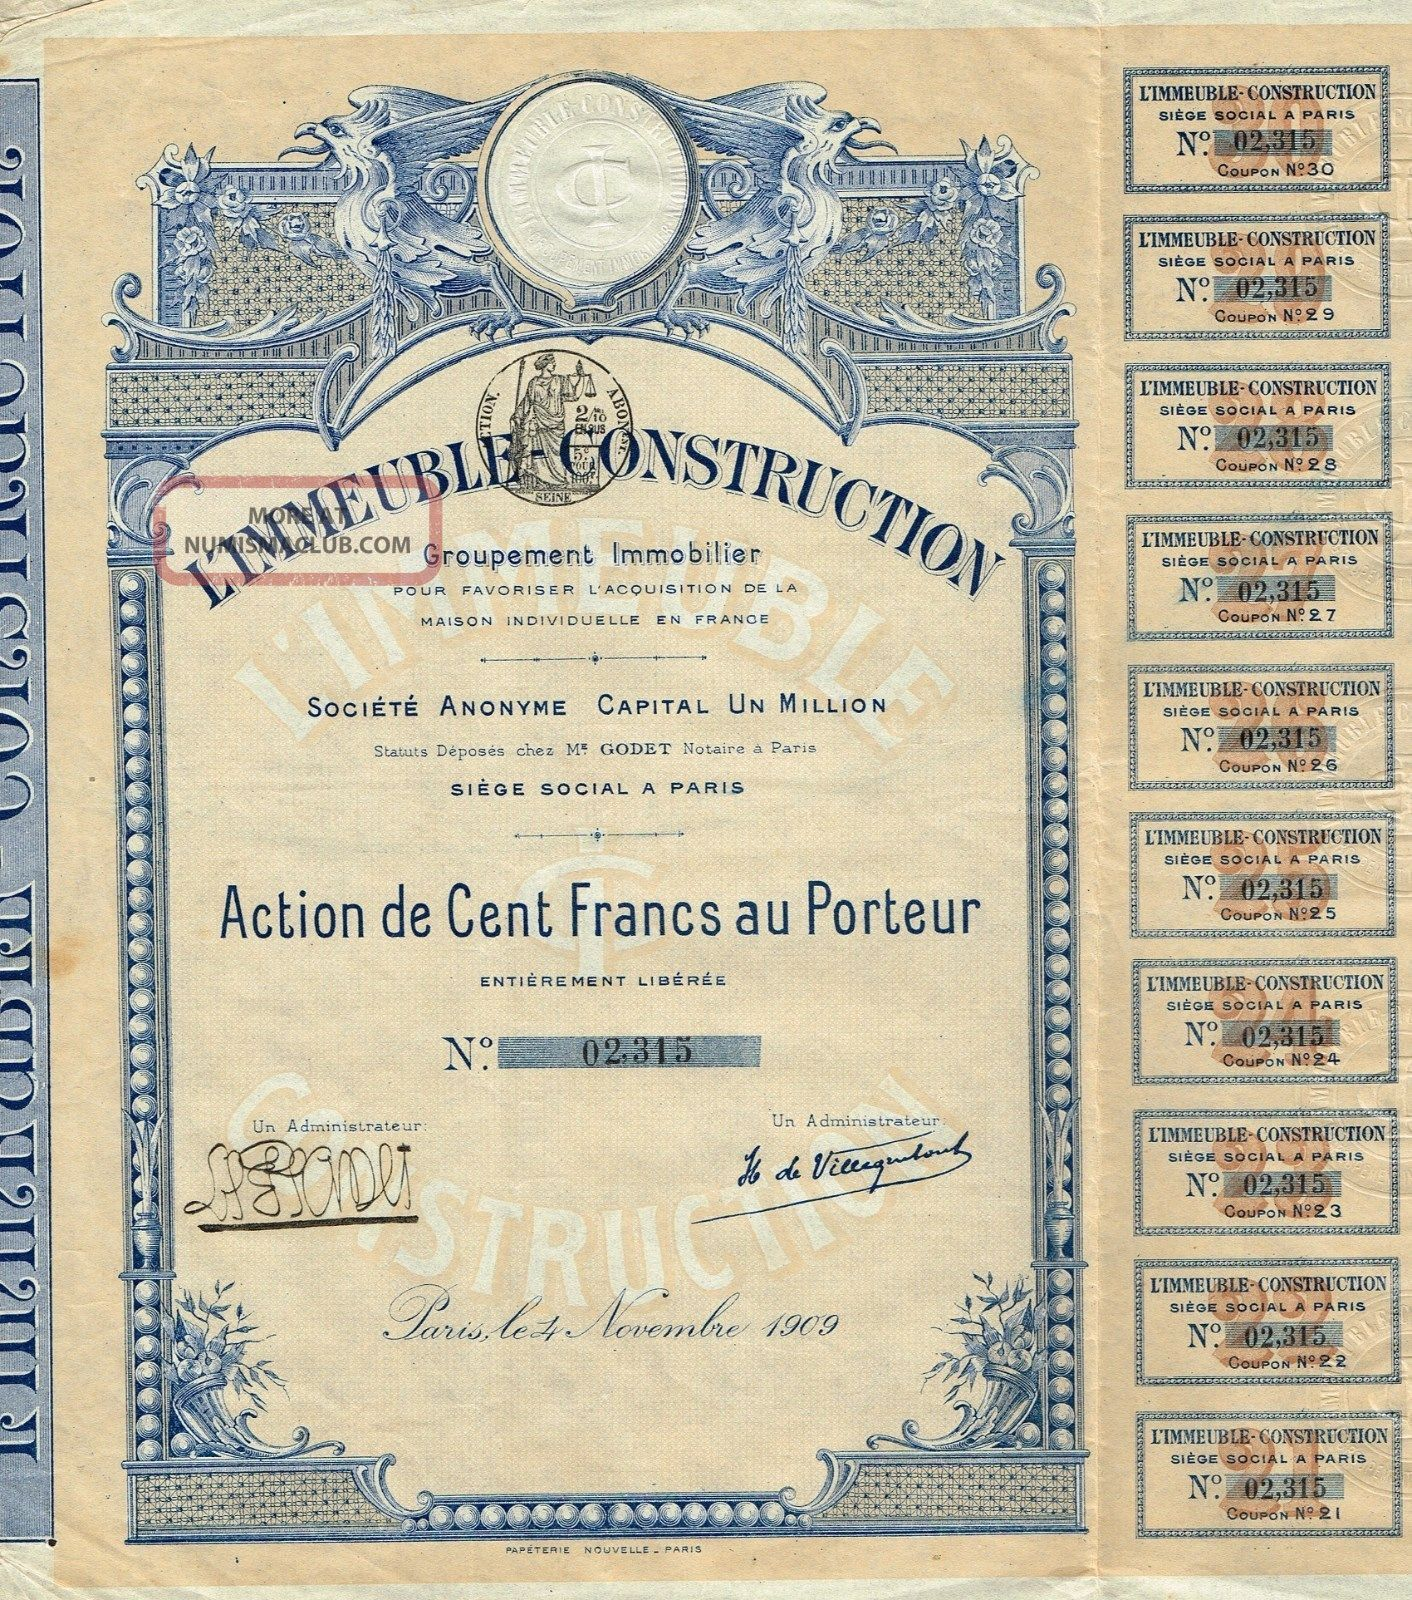 France Building Construction Real Estate Group Stock Certificate 1909 World photo